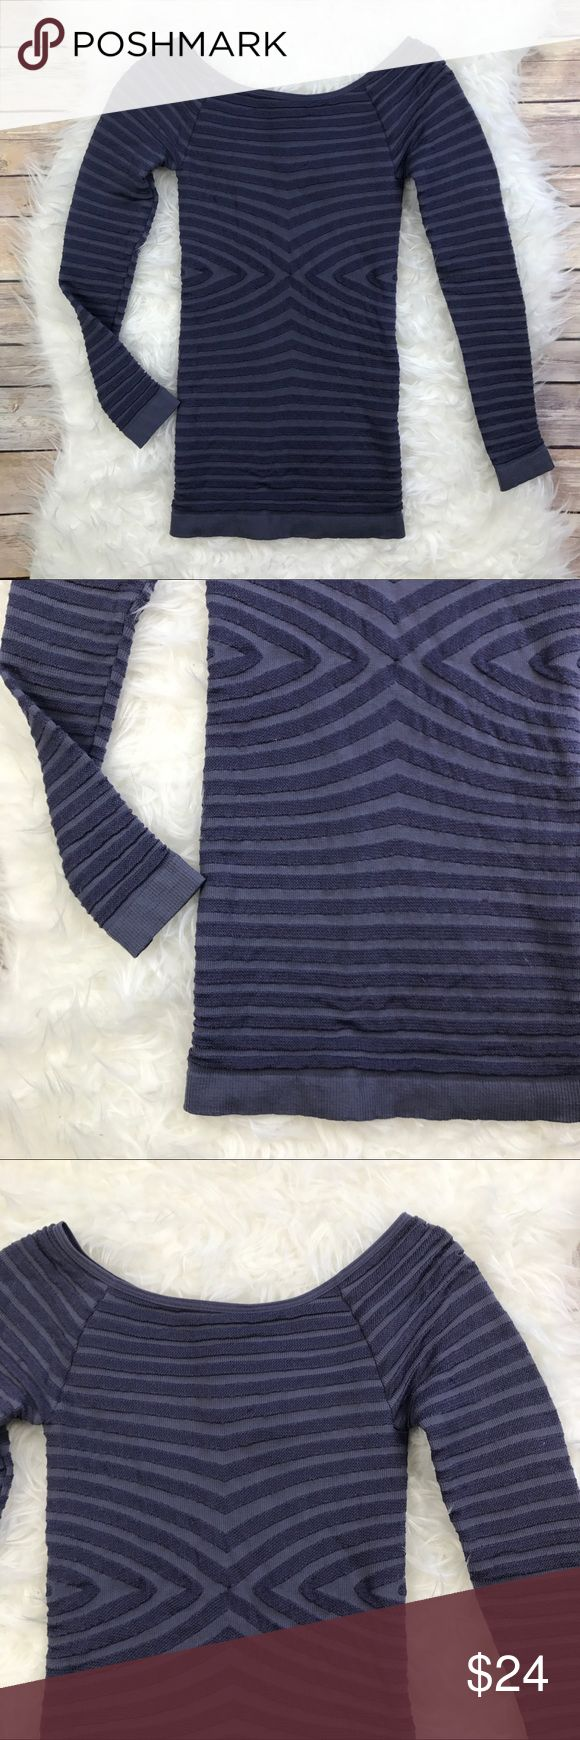 """Free People Bodycon Boatneck Top Good condition Intimately Free People Bodycon purple Boatneck Top. Size XS. Purple with Metallic thick ribs. Super stretchy 92% nylon, 8% spandex. Bust 22""""-36"""", length 23.5"""". Long sleeves. No trades, offers welcome. Free People Tops Blouses"""